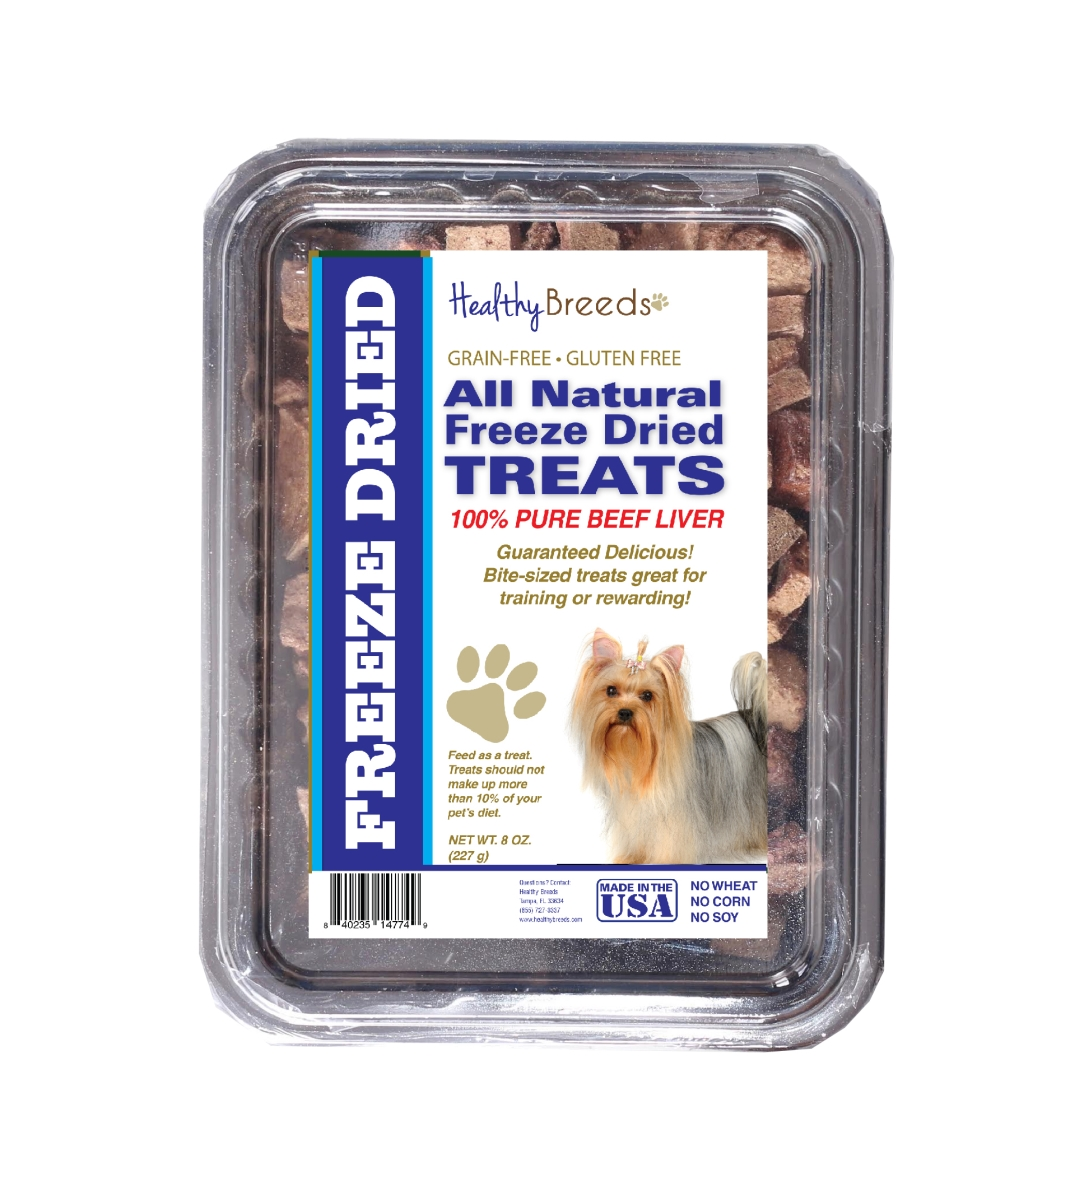 Healthy Breeds 840235147619 10 oz Yorkshire Terrier All Natural Freeze Dried Treats Beef Liver